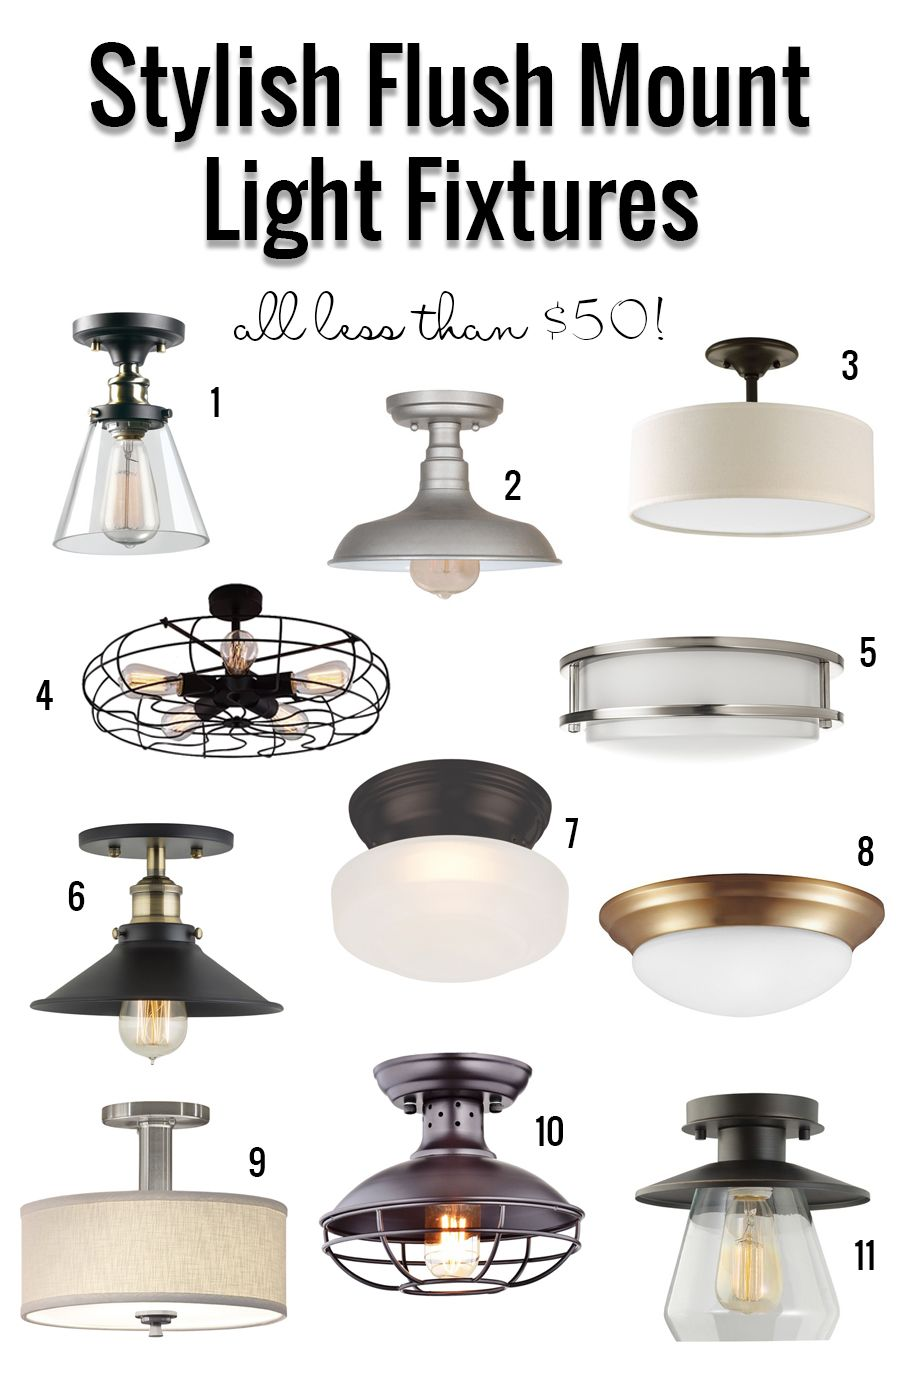 Stylish Flush Mount Light Fixtures Under 50 So Many Great Affordable Options Light Fixtures Flush Mount Ceiling Mount Light Fixtures Kitchen Ceiling Lights